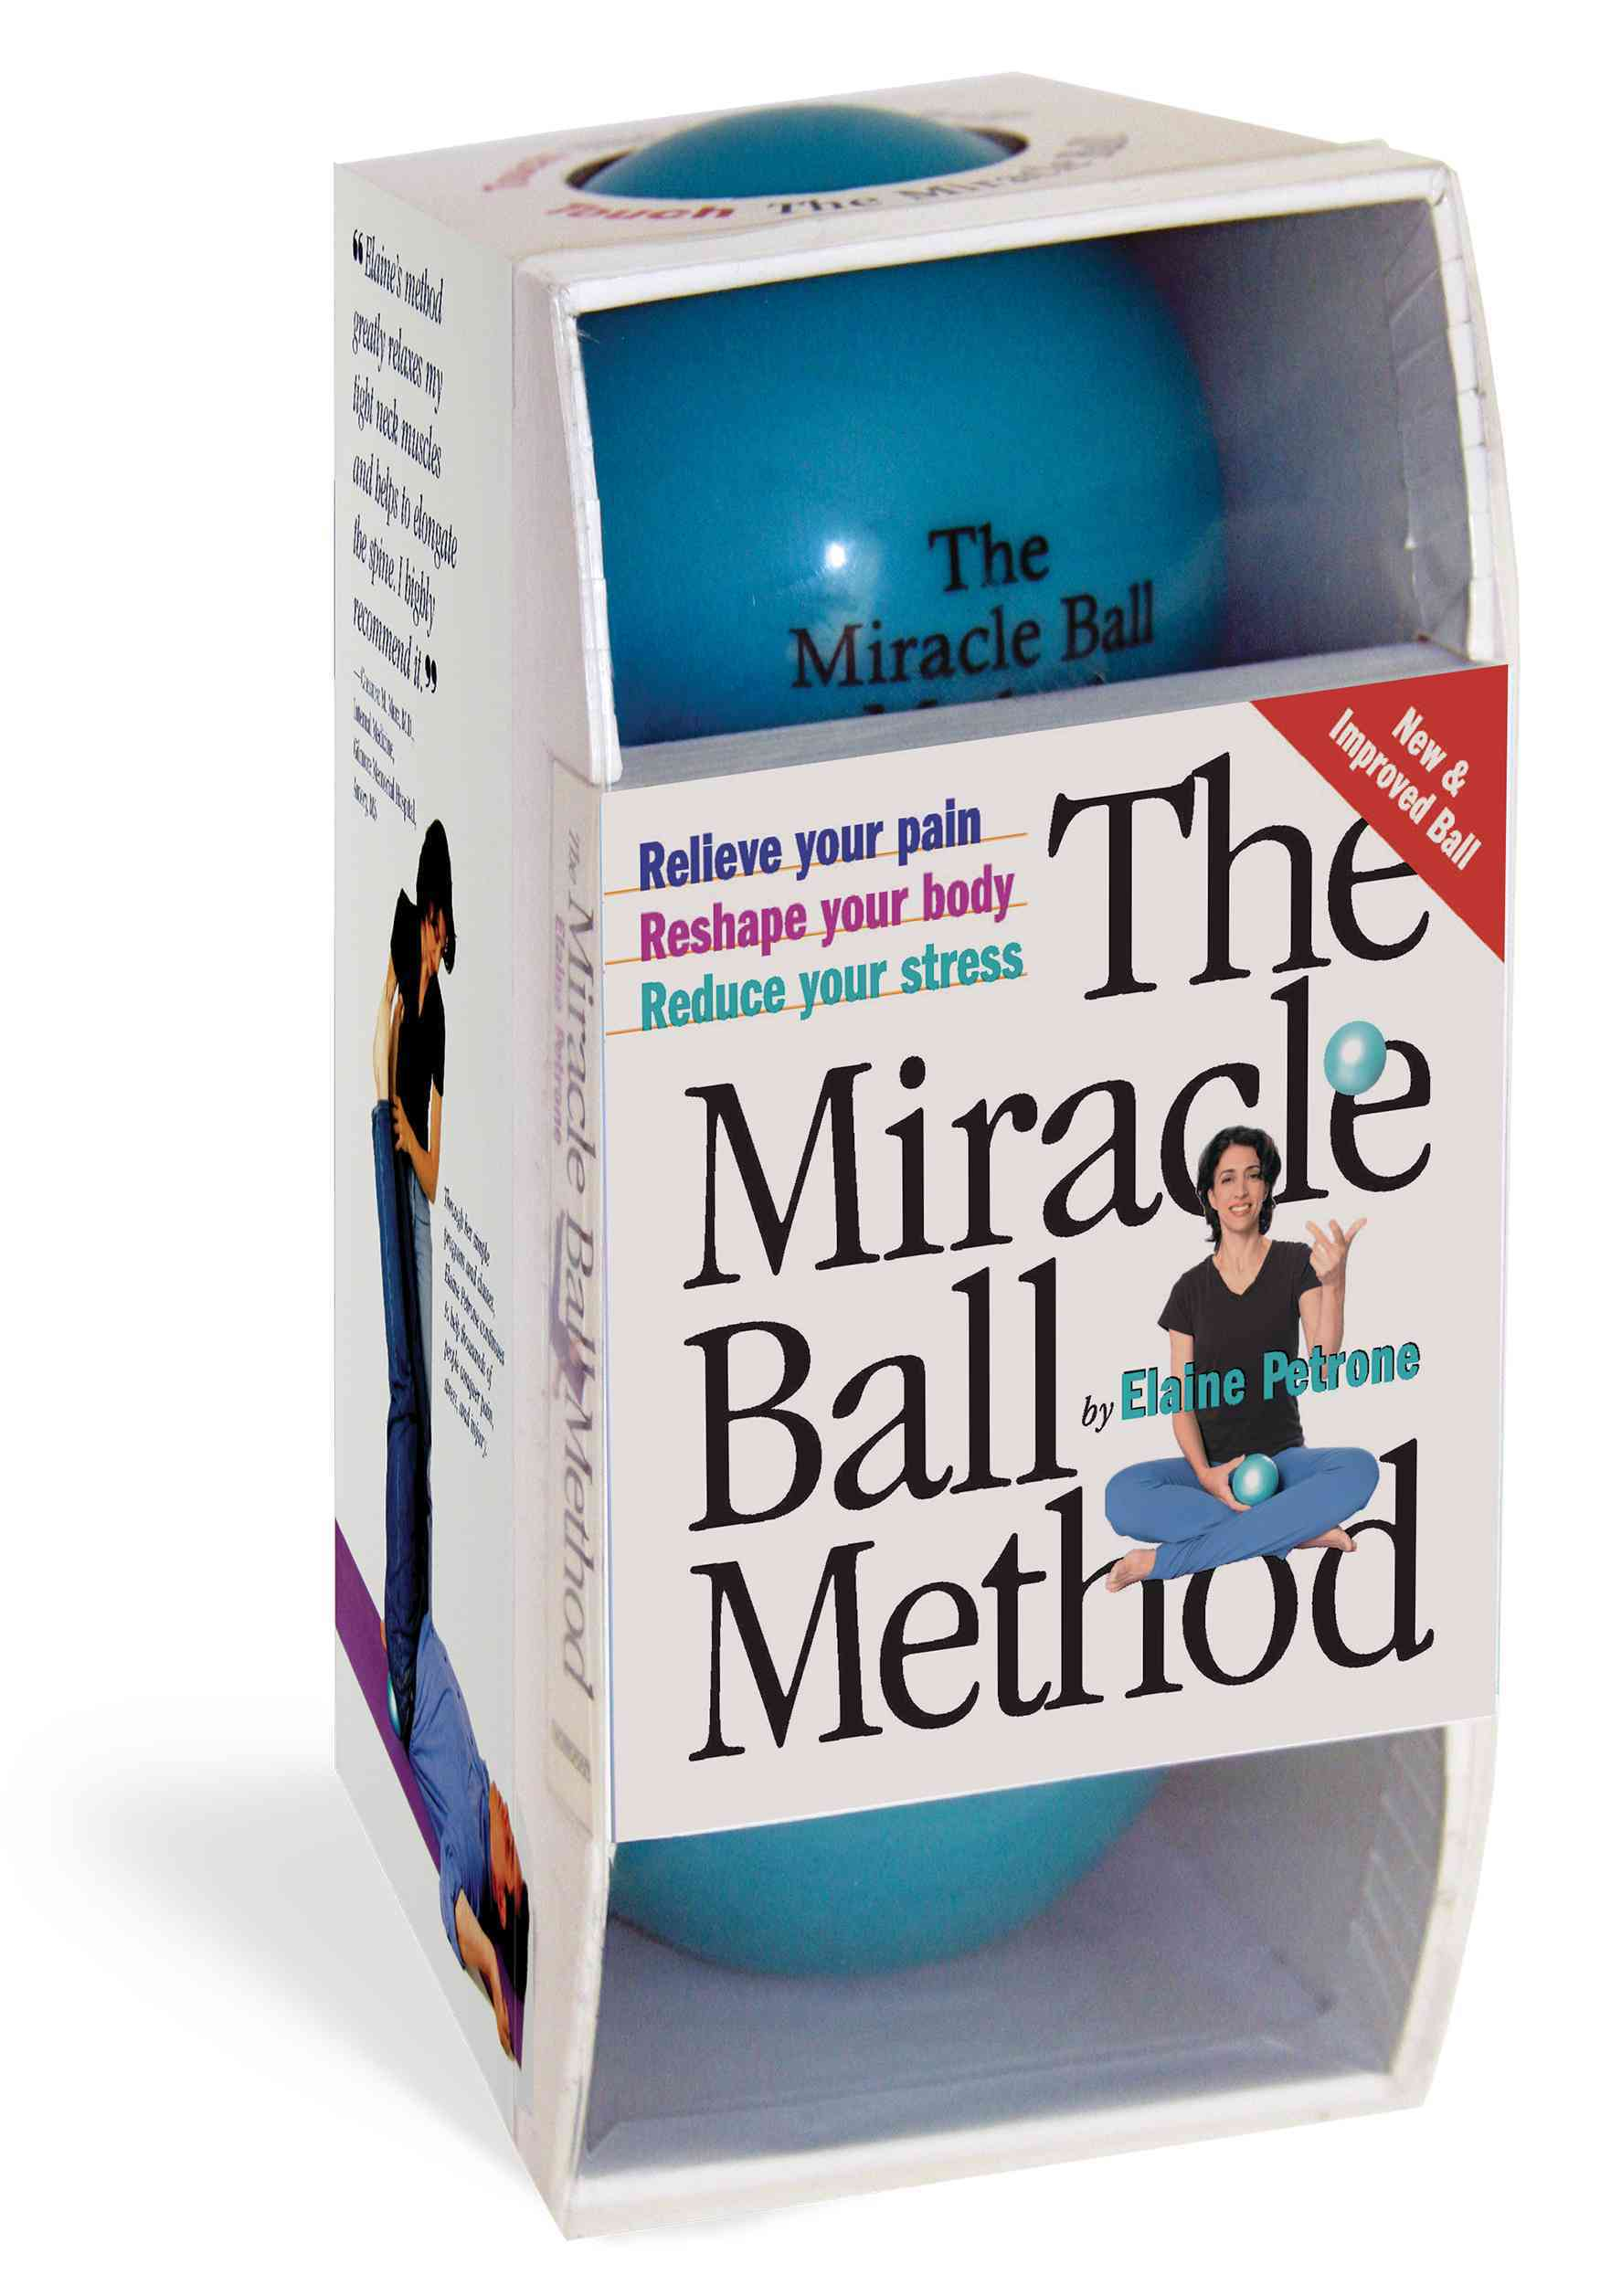 The Miracle Ball Method: Relieve Your Pain, Reshape Your Body, Reduce Your Stress